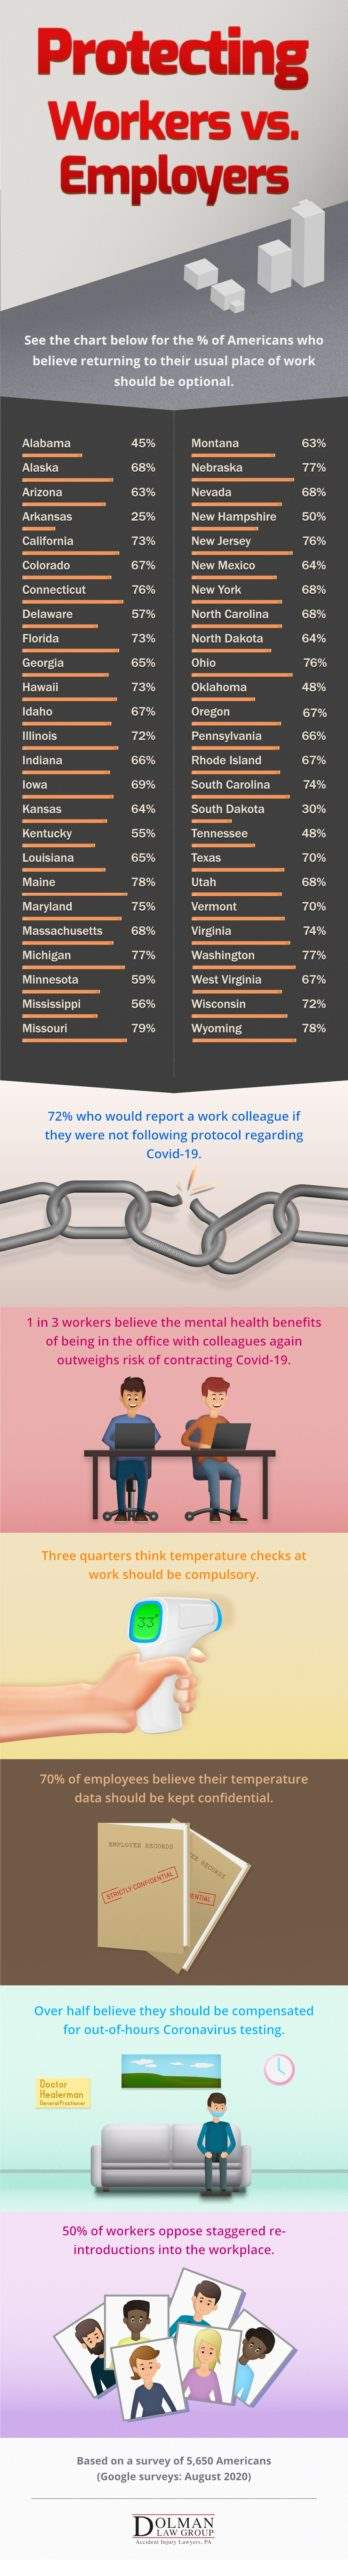 Covid-19 Employee Protection Survey Results Dolman Law Group Infographic